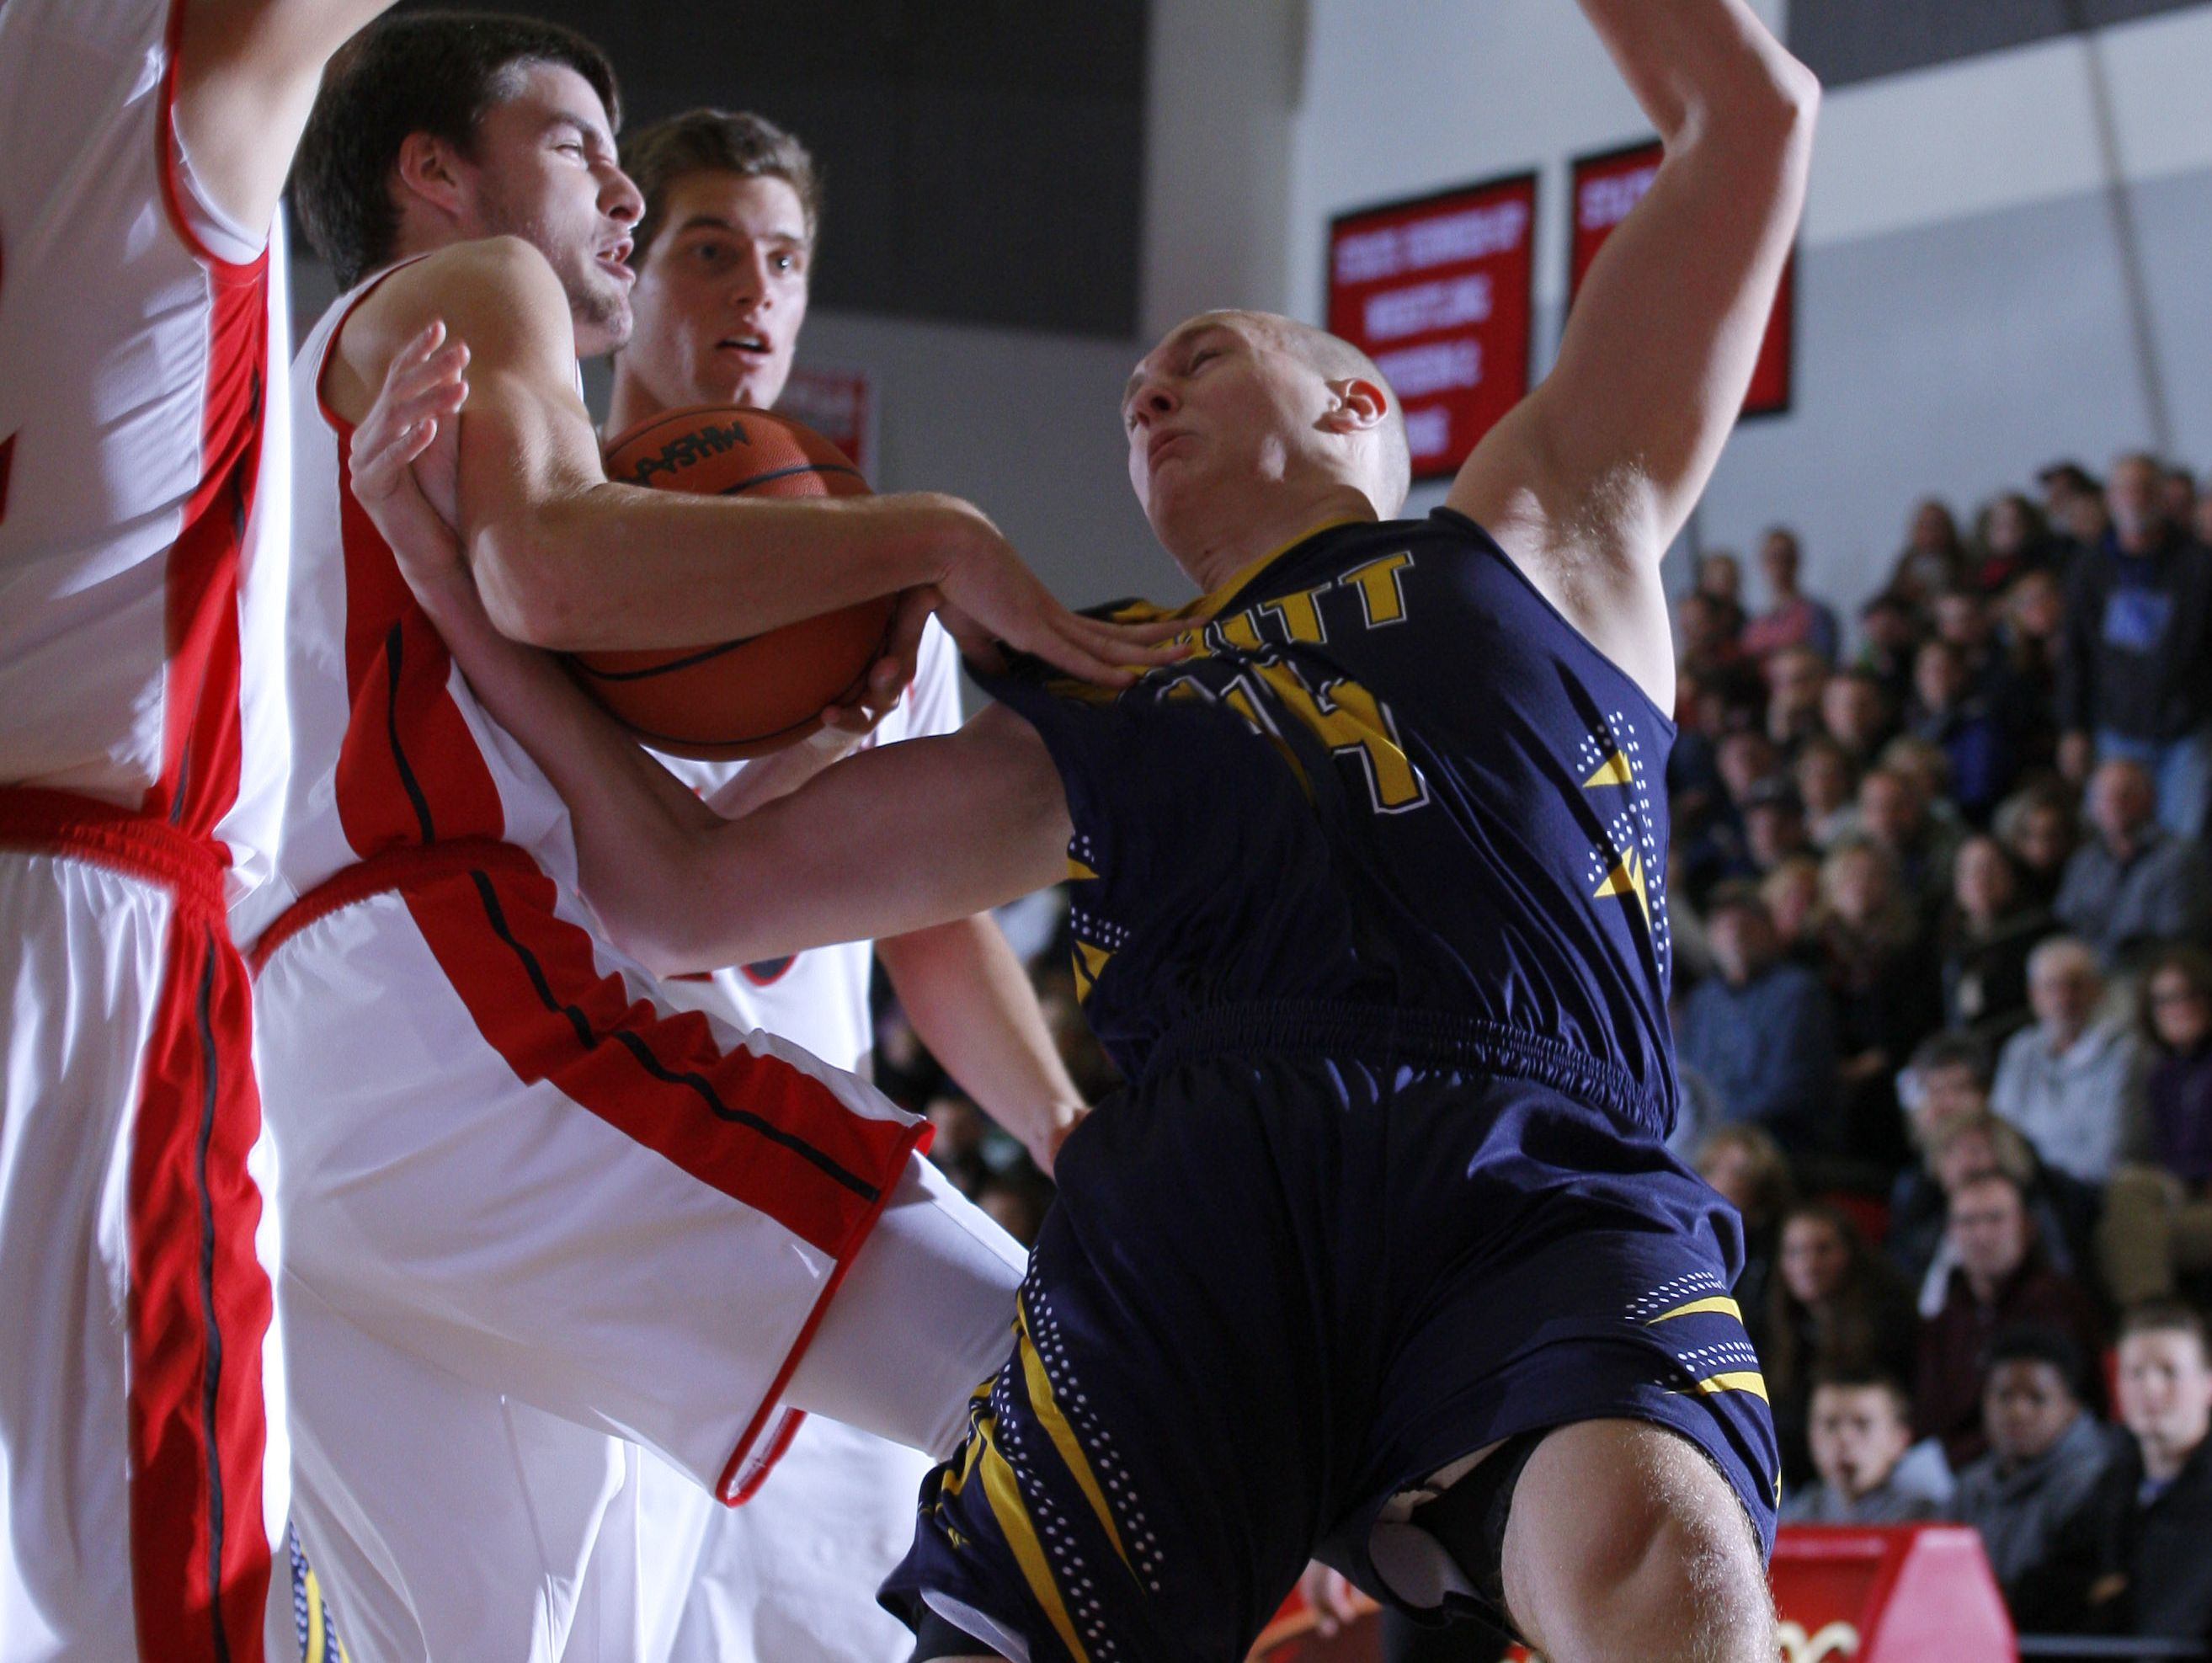 DeWitt's Tanner Reha, right, is fouled on a drive by St. Johns' Ross Feldpausch Friday, Dec. 16, 2016, in St. Johns, Mich.